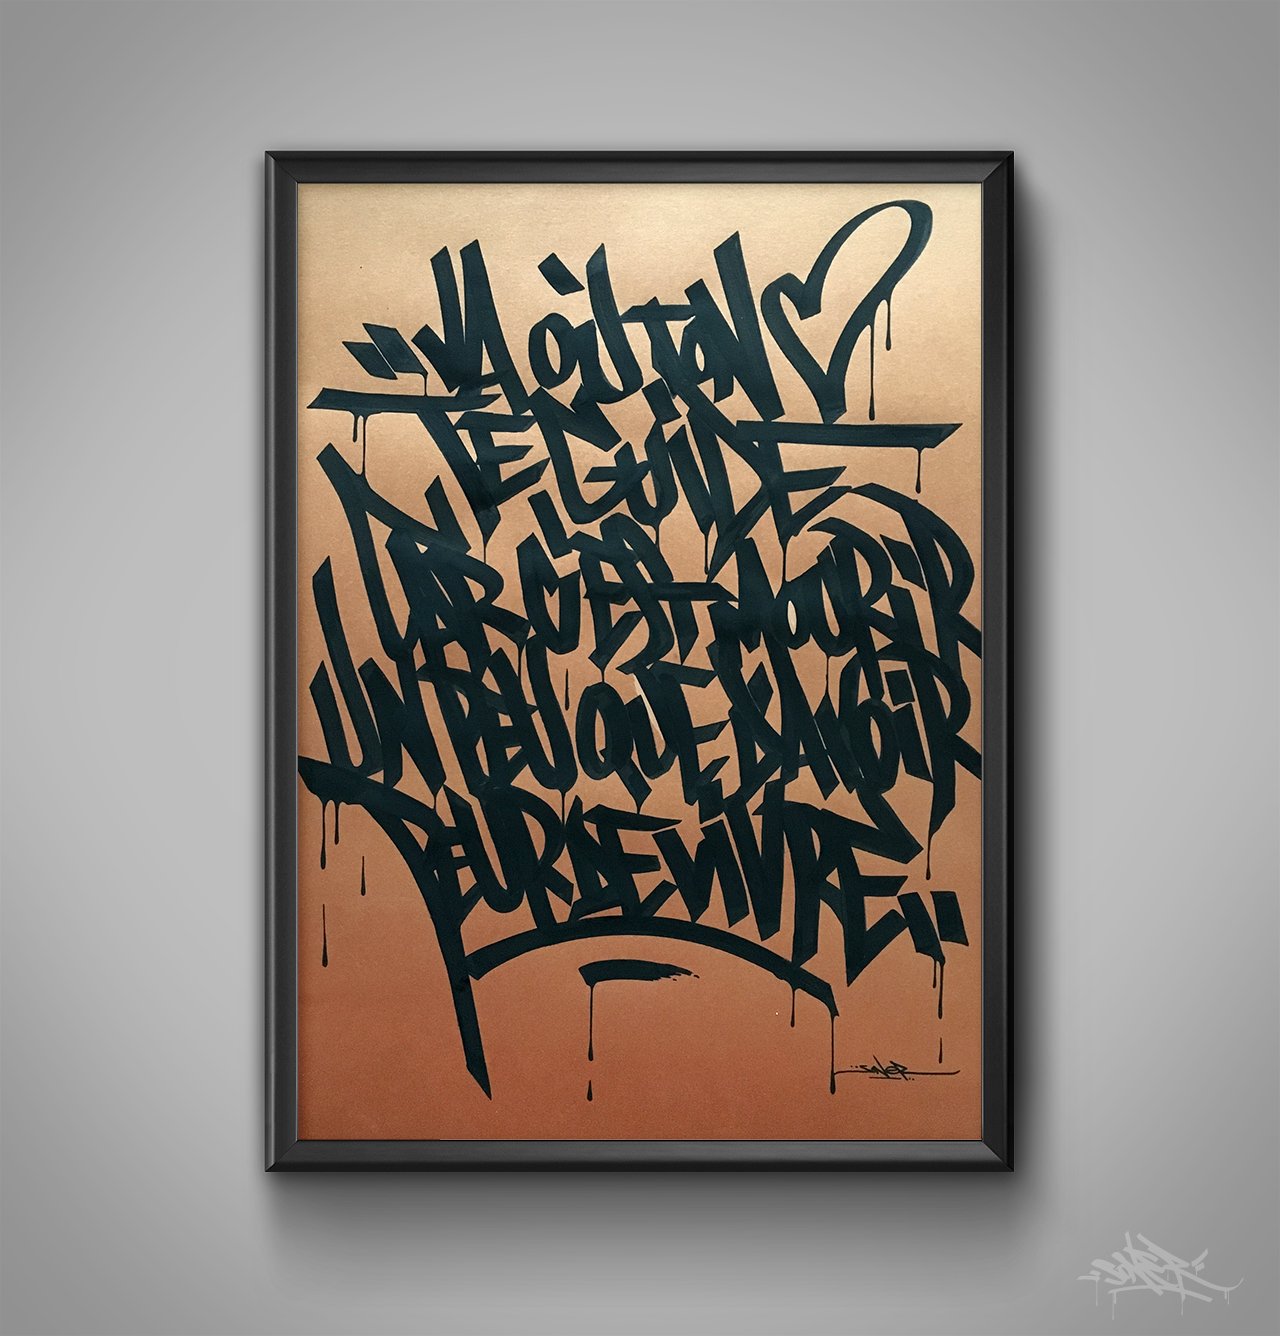 Caligrafitizm projects